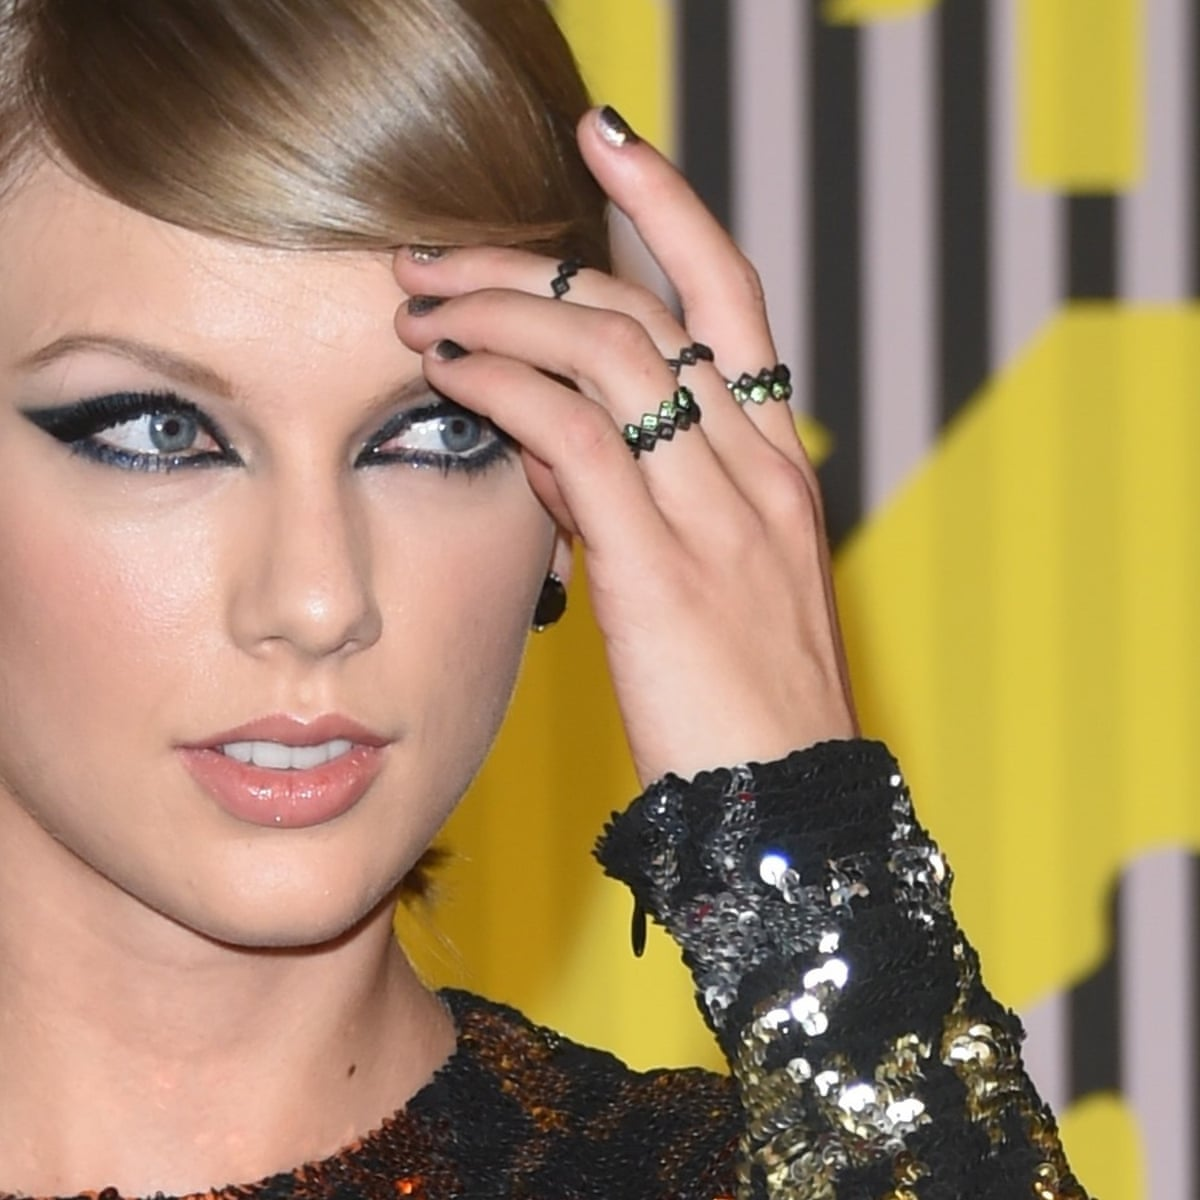 Taylor Swift Launches Counterclaim Against Radio Dj Accused Of Groping Her Taylor Swift The Guardian